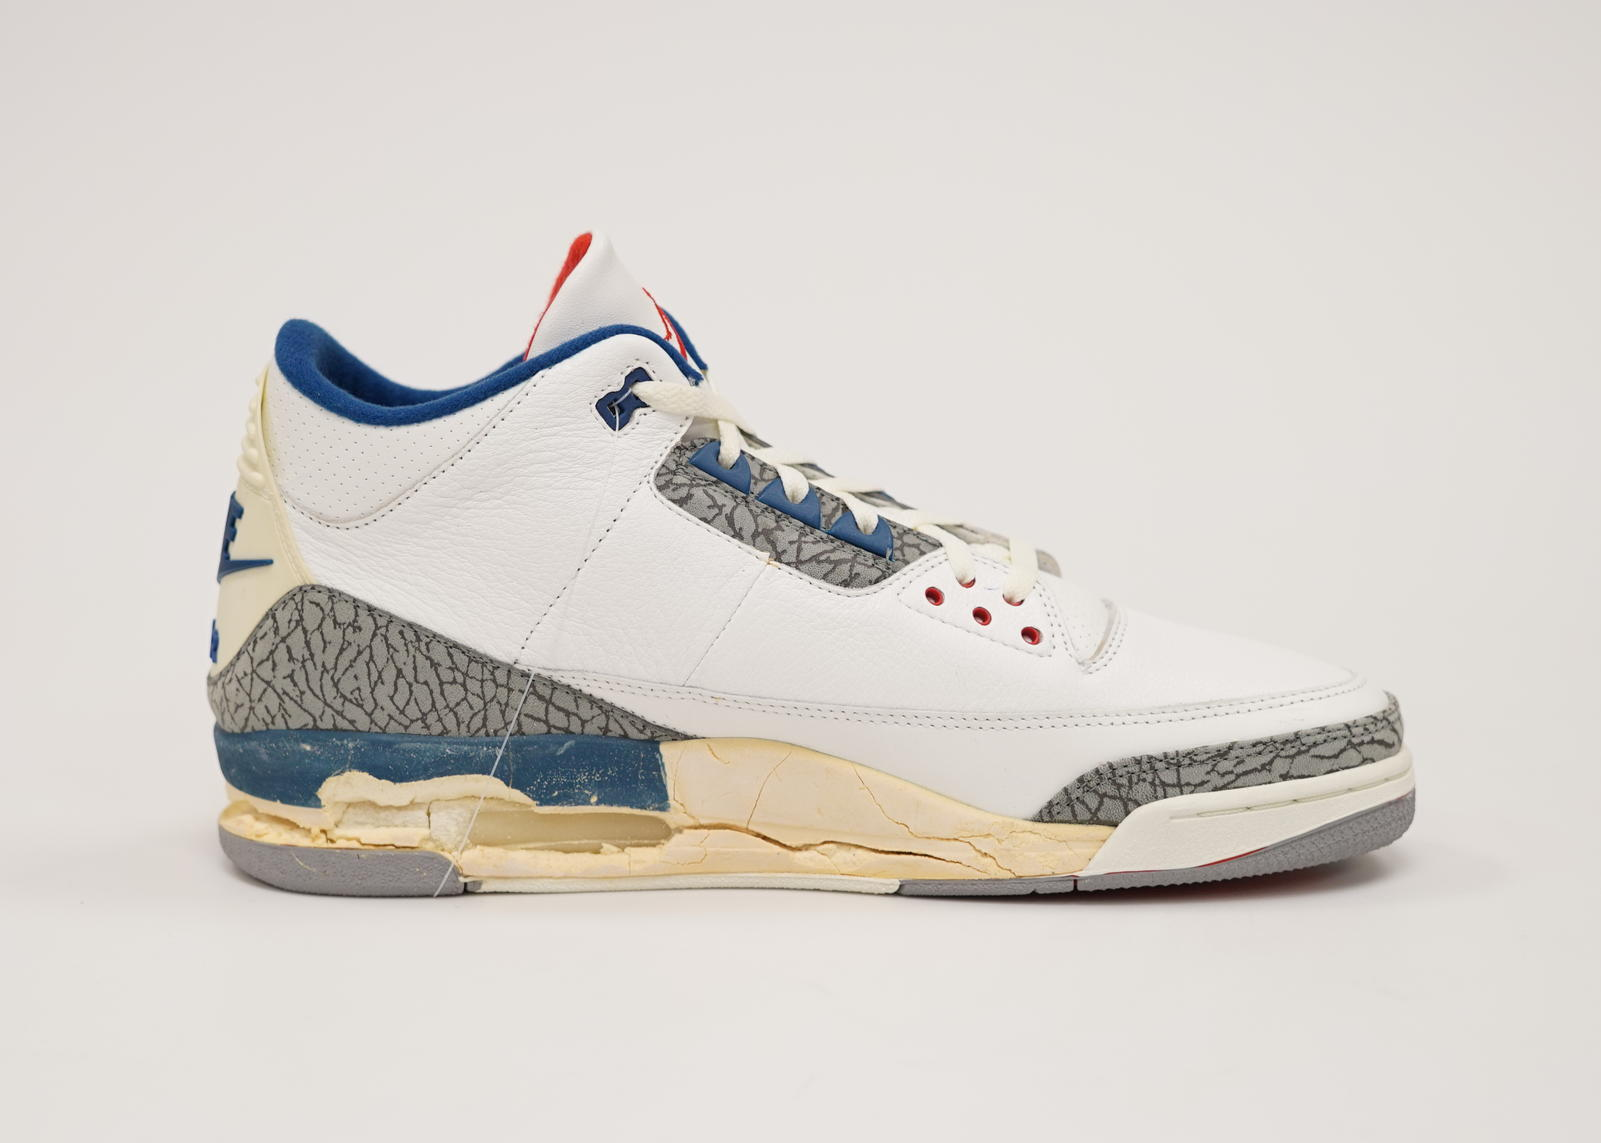 6ed29e9f3e6 The Air Jordan III returns - Nike News